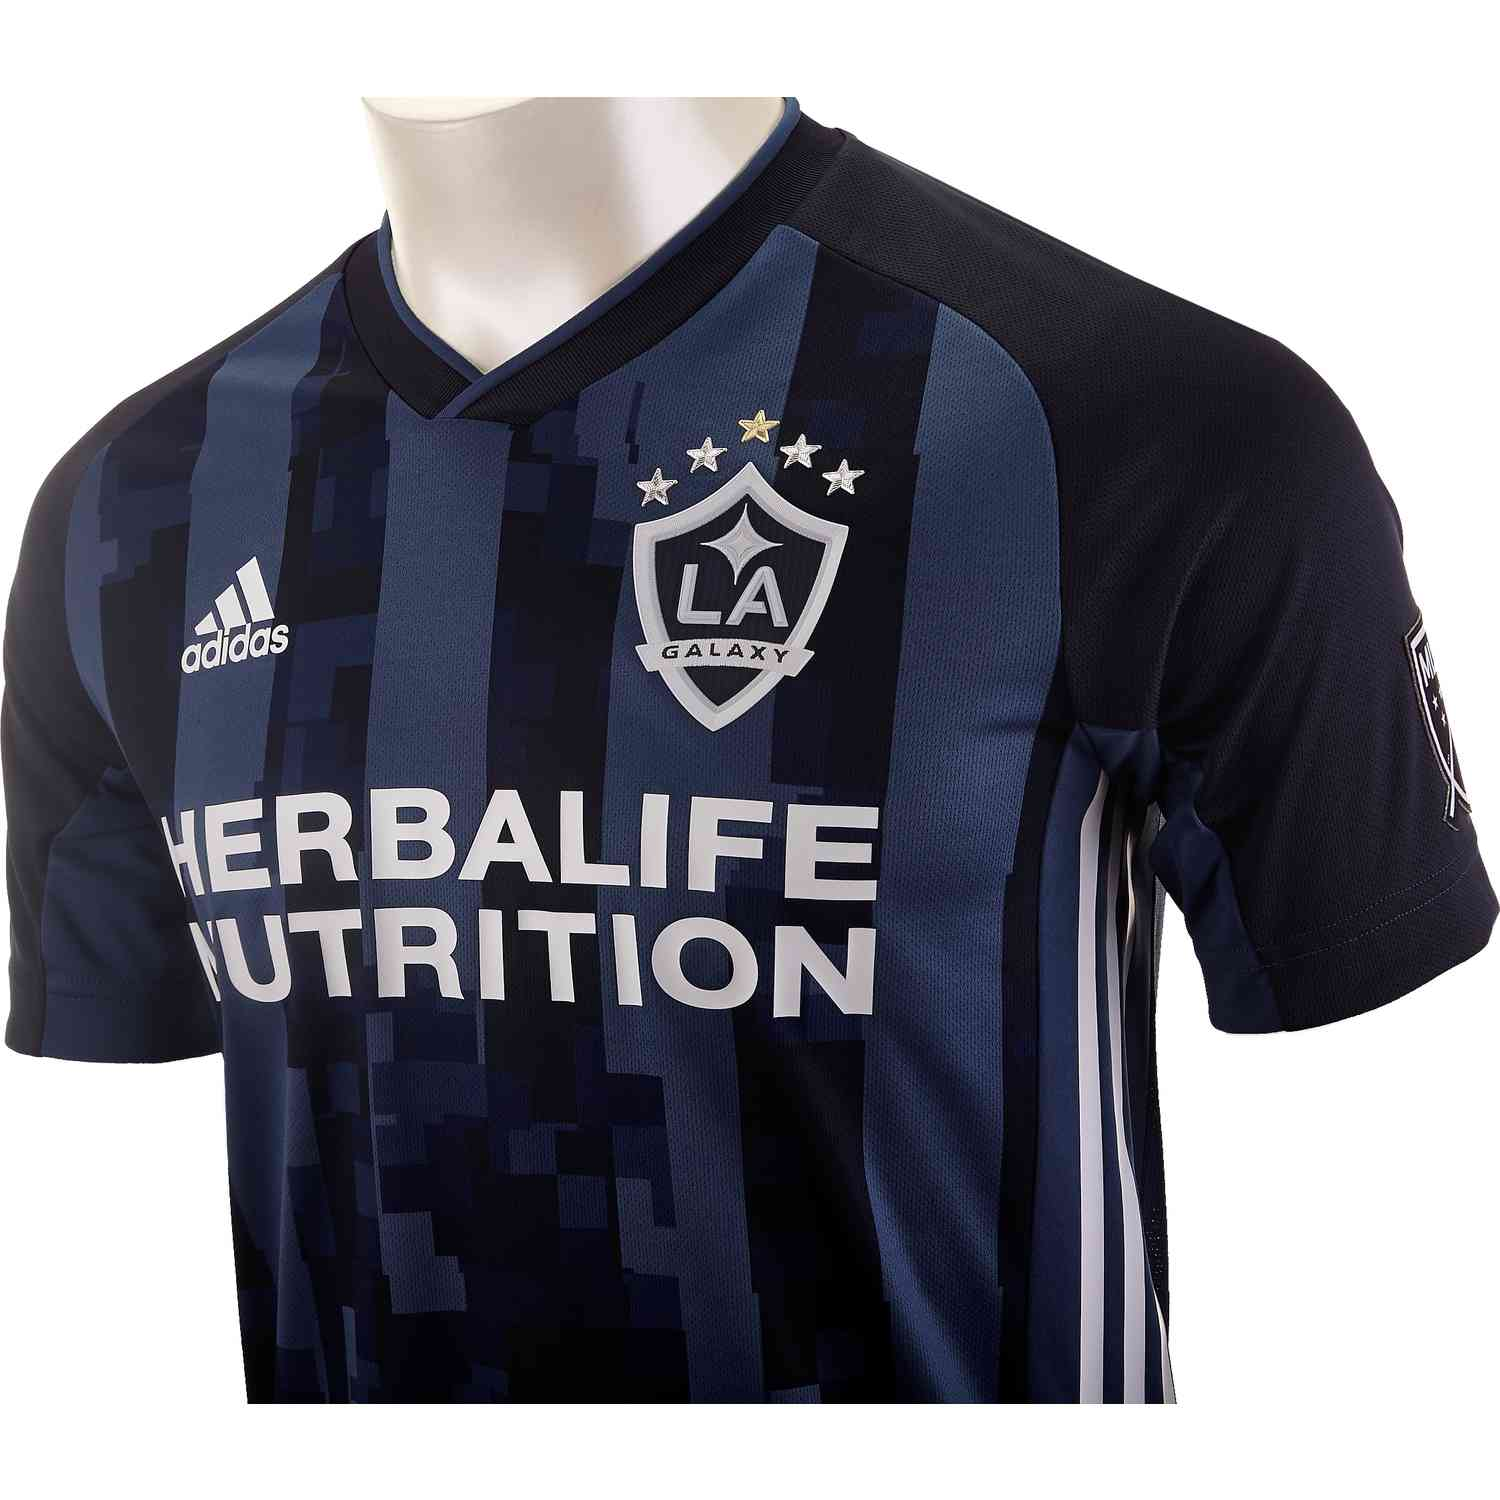 info for 2133a 6e657 adidas LA Galaxy Away Authentic Jersey - 2019 - Soccer Master